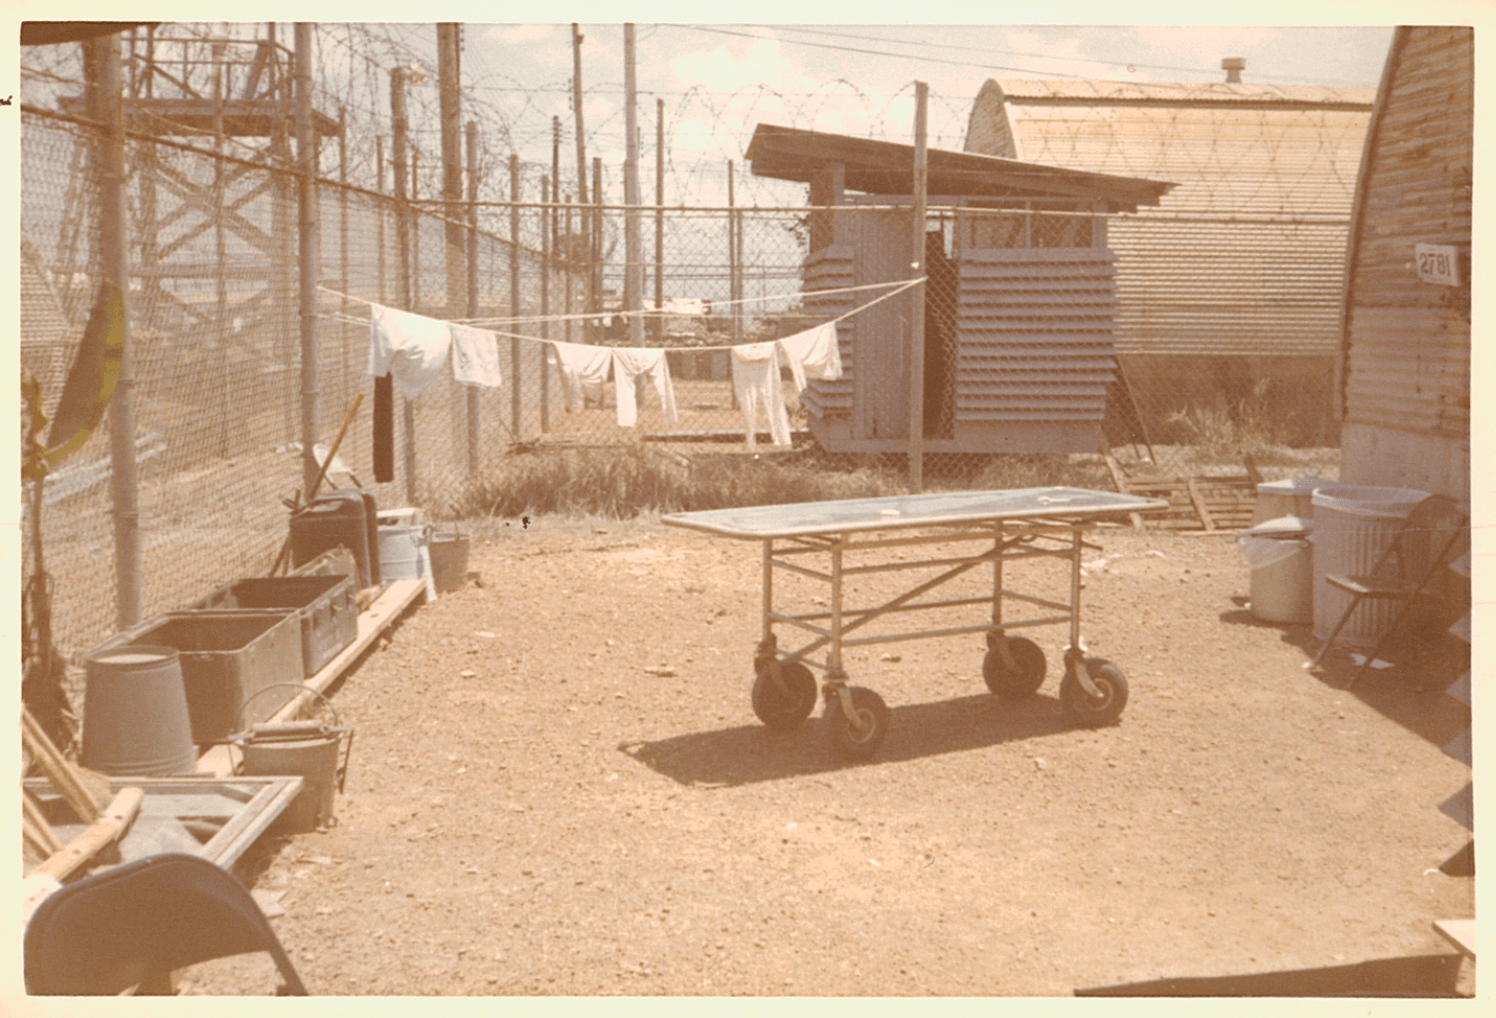 The yard of the hospital, dirt floor, clothesline, metal hospital bed.